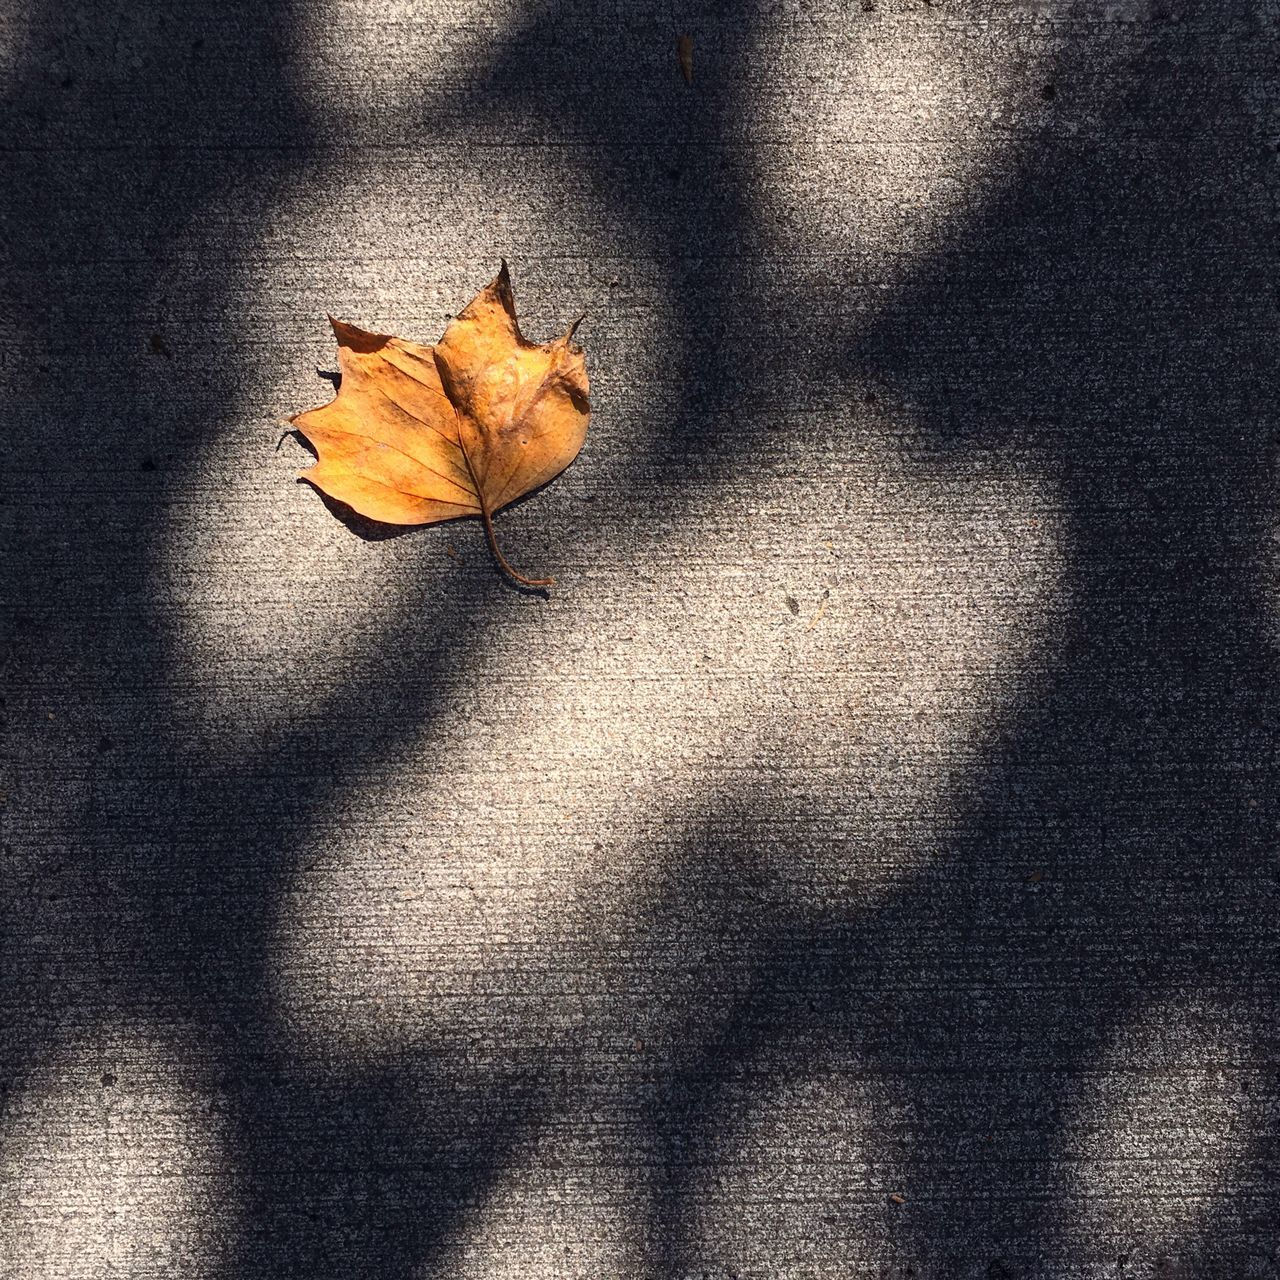 Leaf Yellow Leaf Sunlight On Leaf Light And Shadow Sunlight And Shadow Autumn Autumn Leaf Golden Leaf Nature Minimalist Rule Of Thirds Eye Em Best Shots IPhone Photography Week On Eyeem